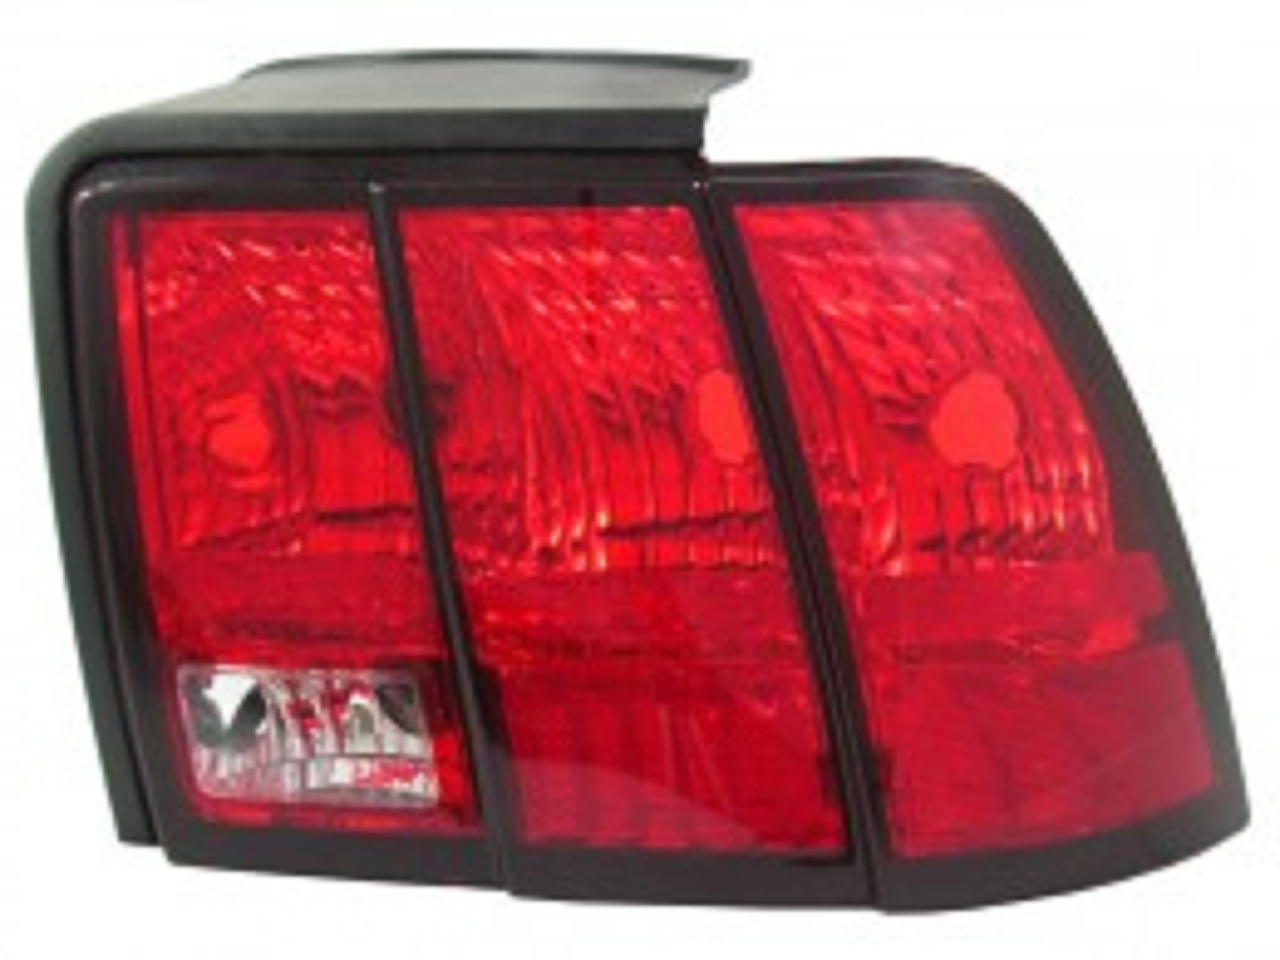 Ford Mustang 1999 2000 2001 2002 2003 2004 tail light right passenger